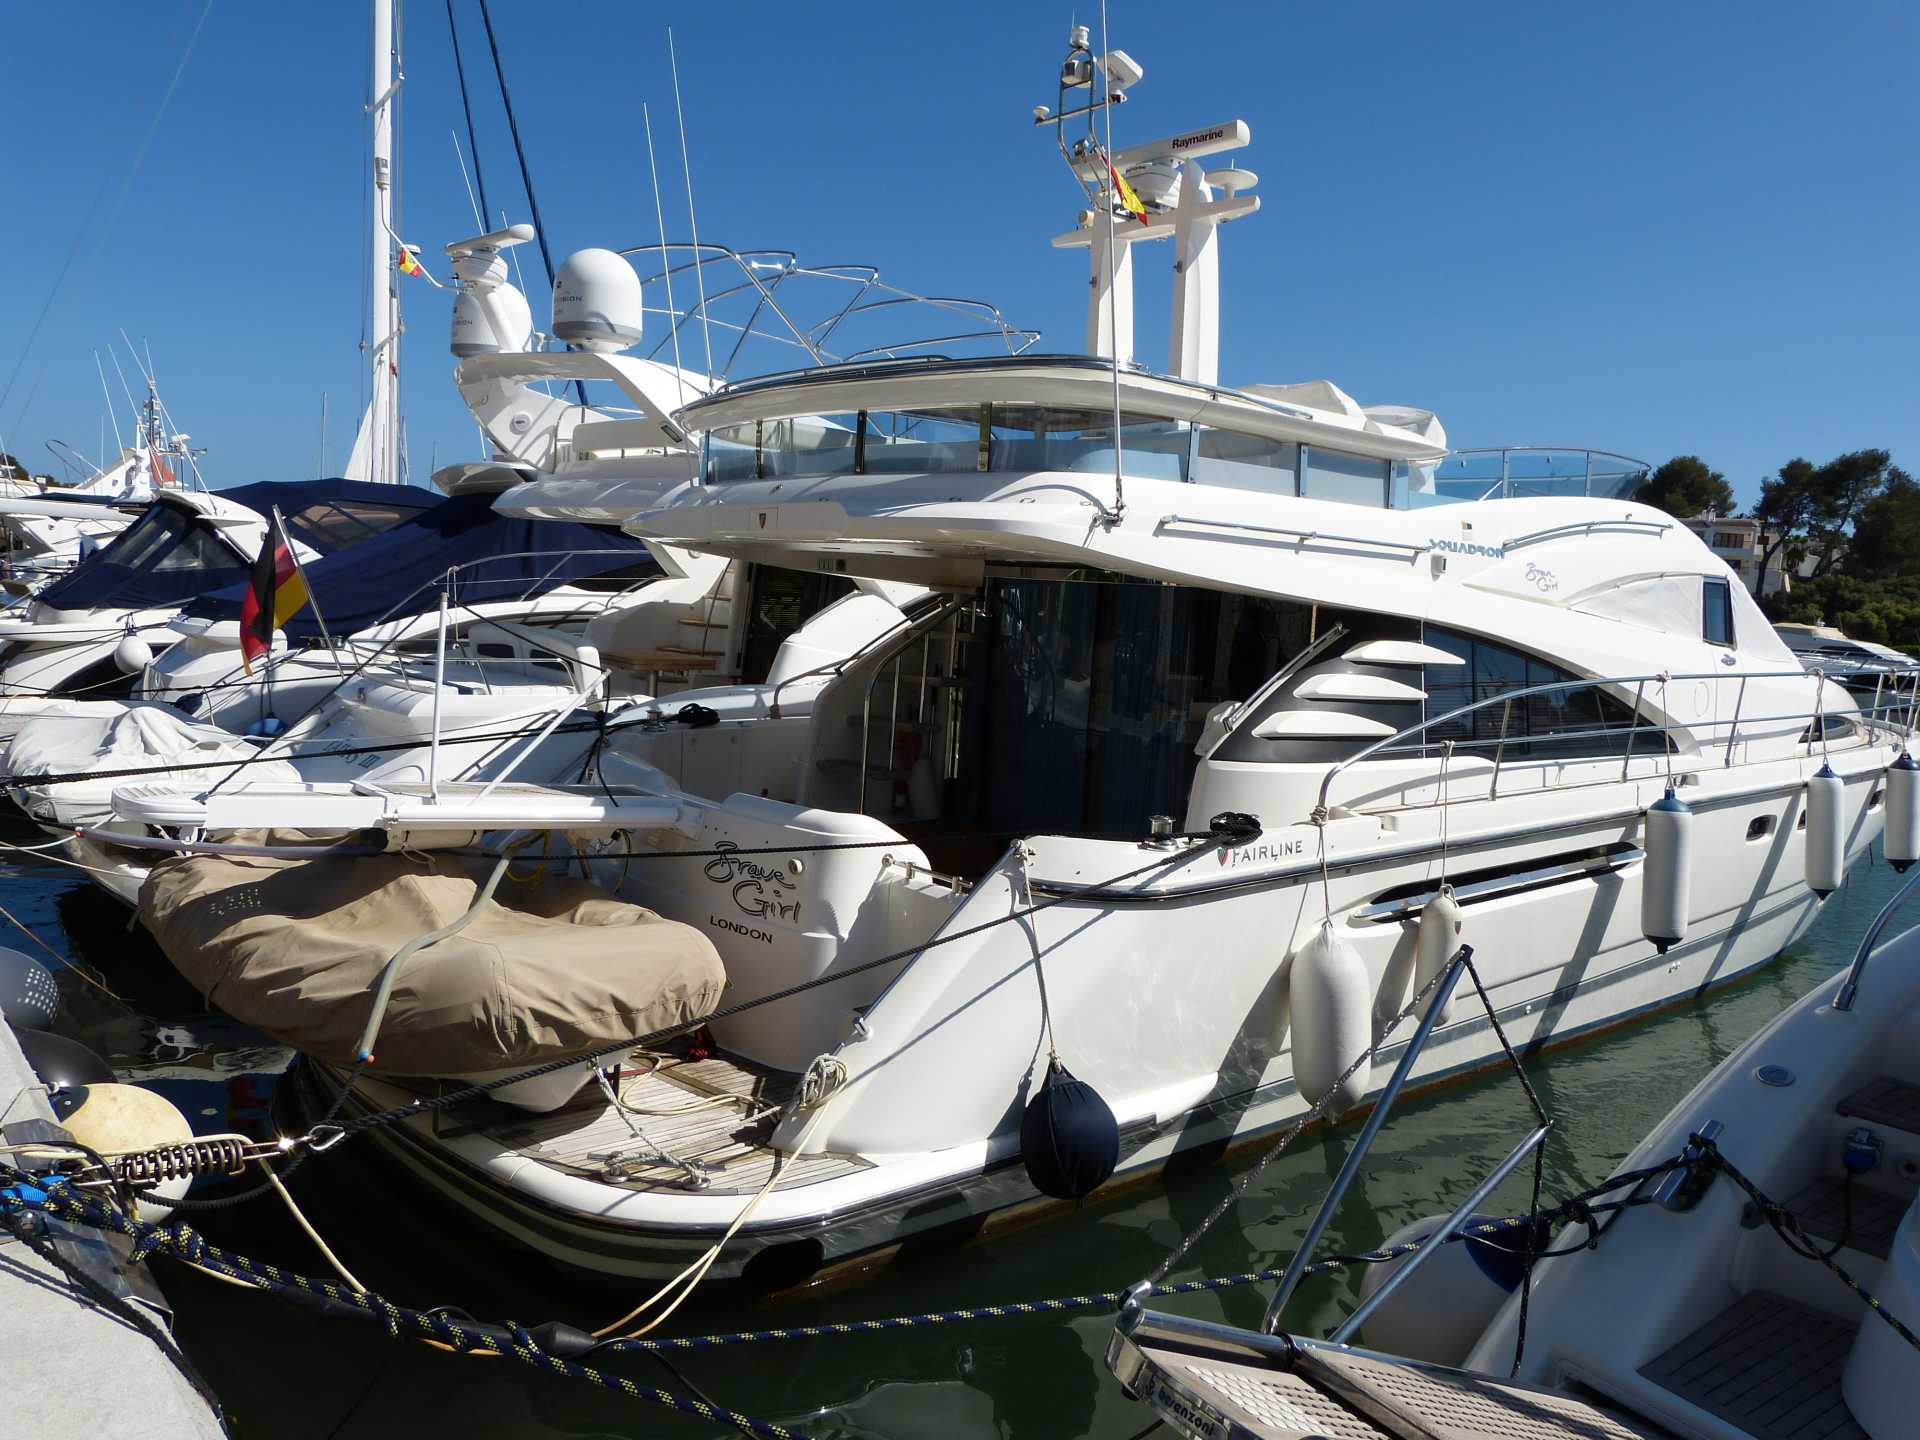 Noble Yachen in Cala d'Or